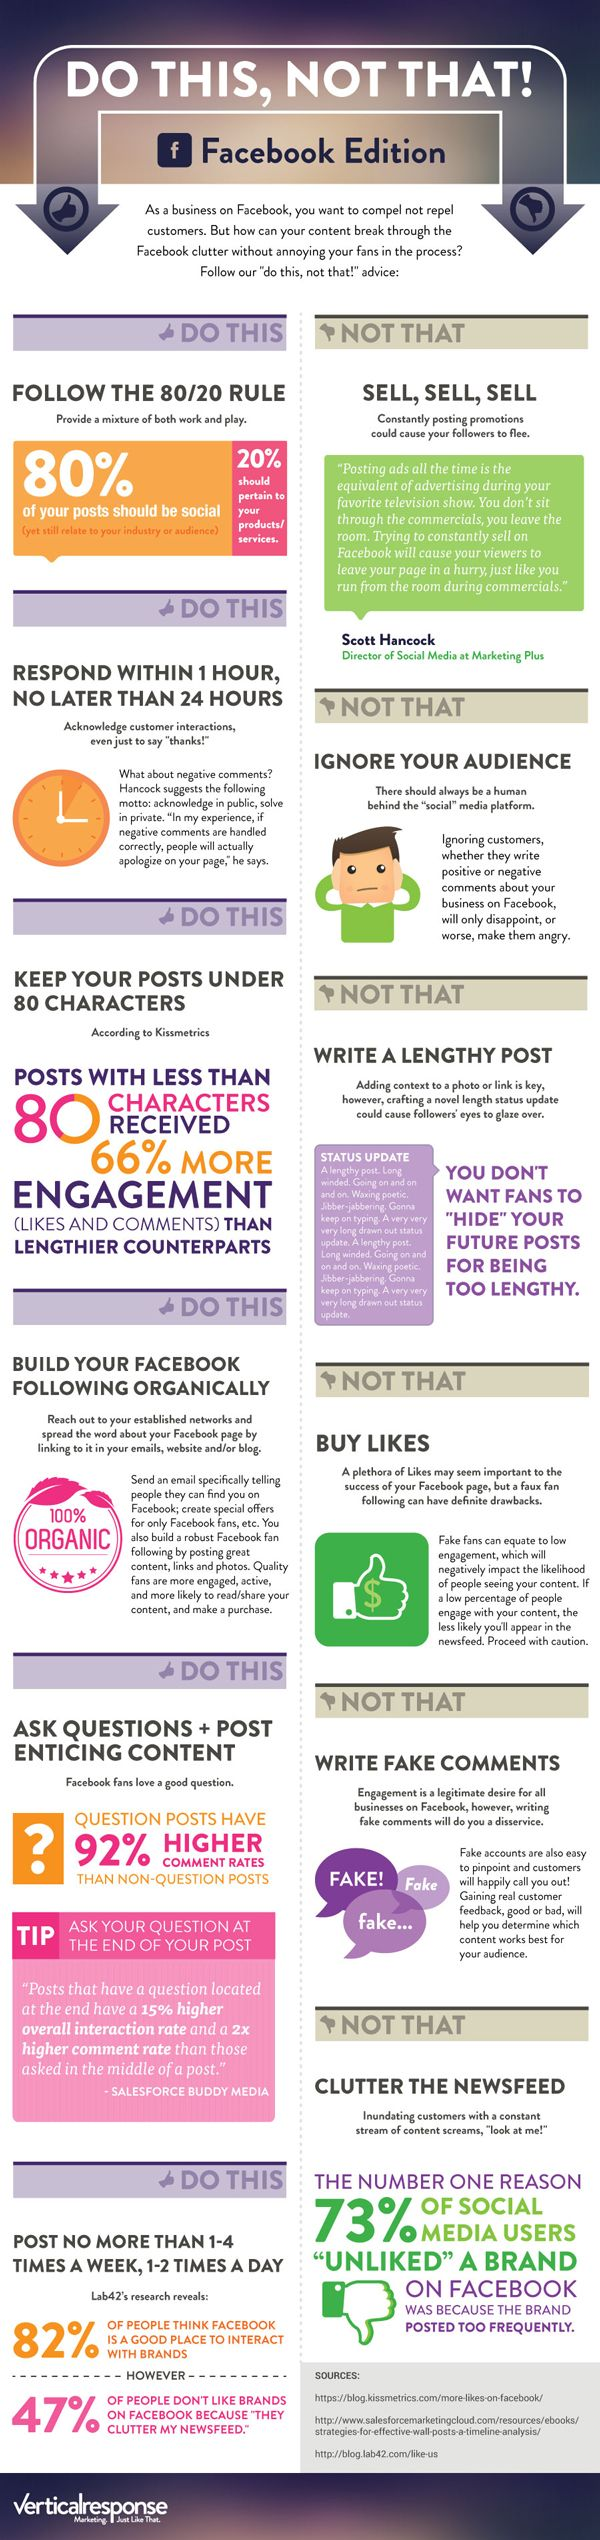 "SOCIAL MEDIA - ""The Do's and Don'ts of Using #Facebook for Business [Infographic]""."